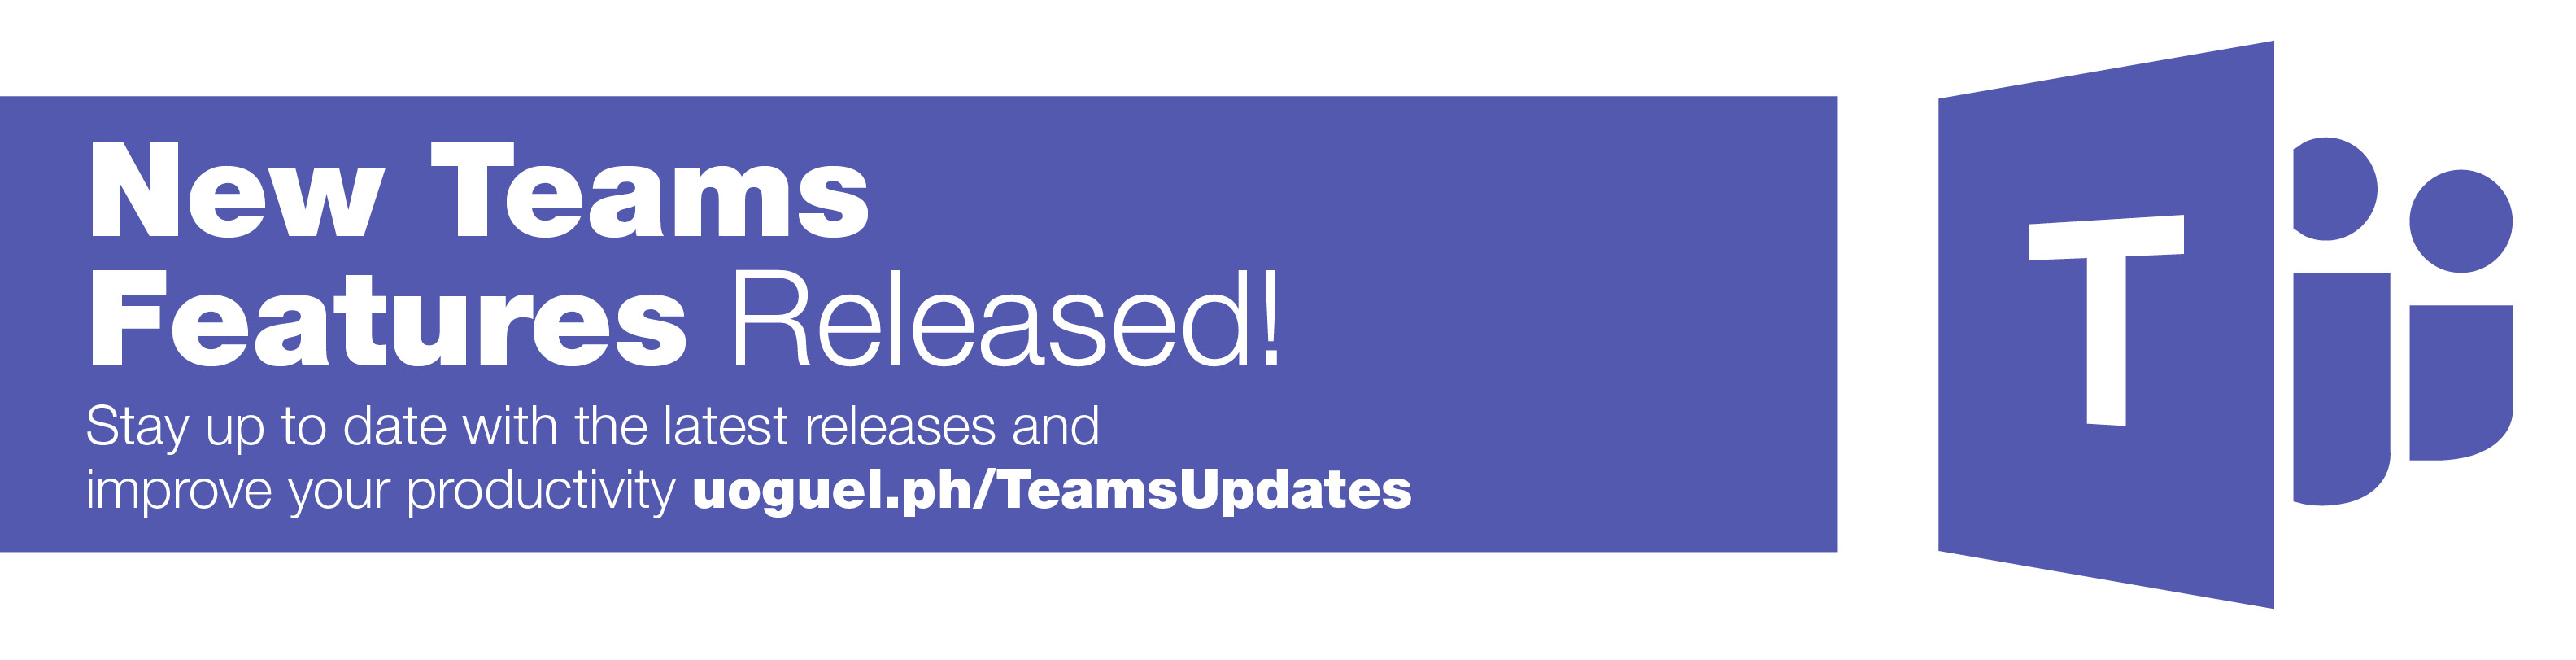 Image with Microsoft Teams branding that says New Teams Features Released! Stay up to date with the latest reseases and improve your productivity at uoguel.ph/TeamsUpdates